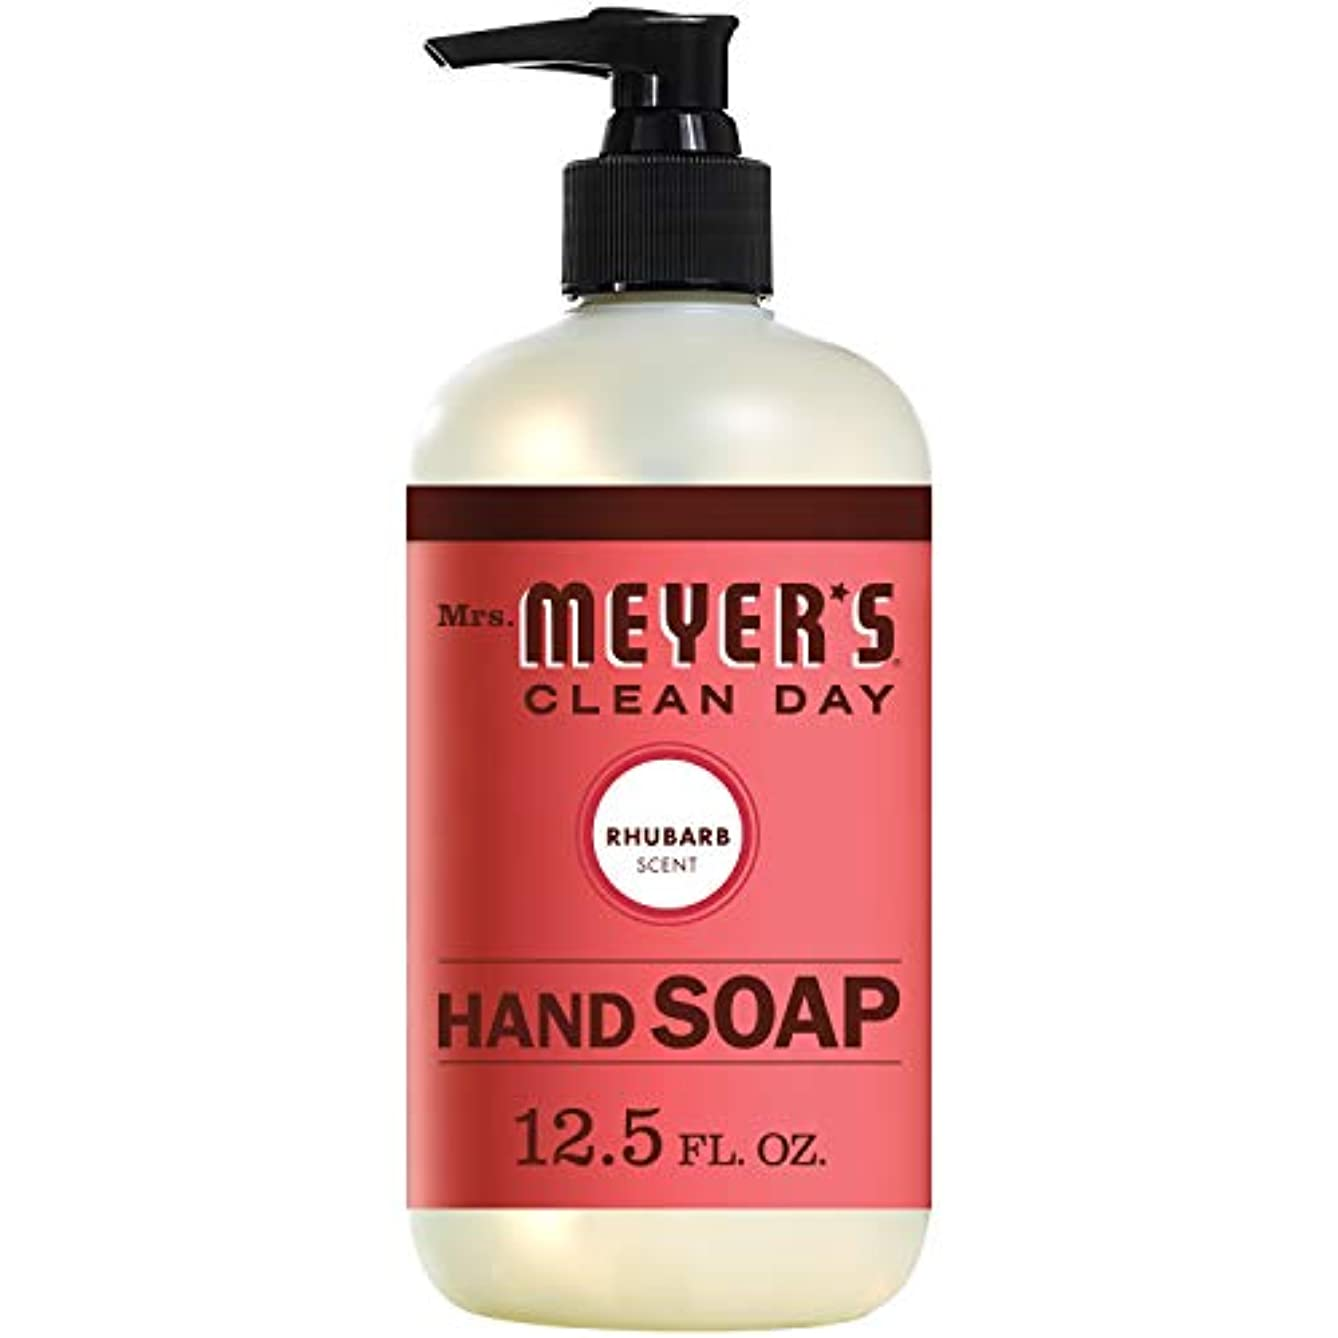 朝ごはんウミウシ竜巻Mrs. Meyers Clean Day, Liquid Hand Soap, Rhubarb Scent, 12.5 fl oz (370 ml)